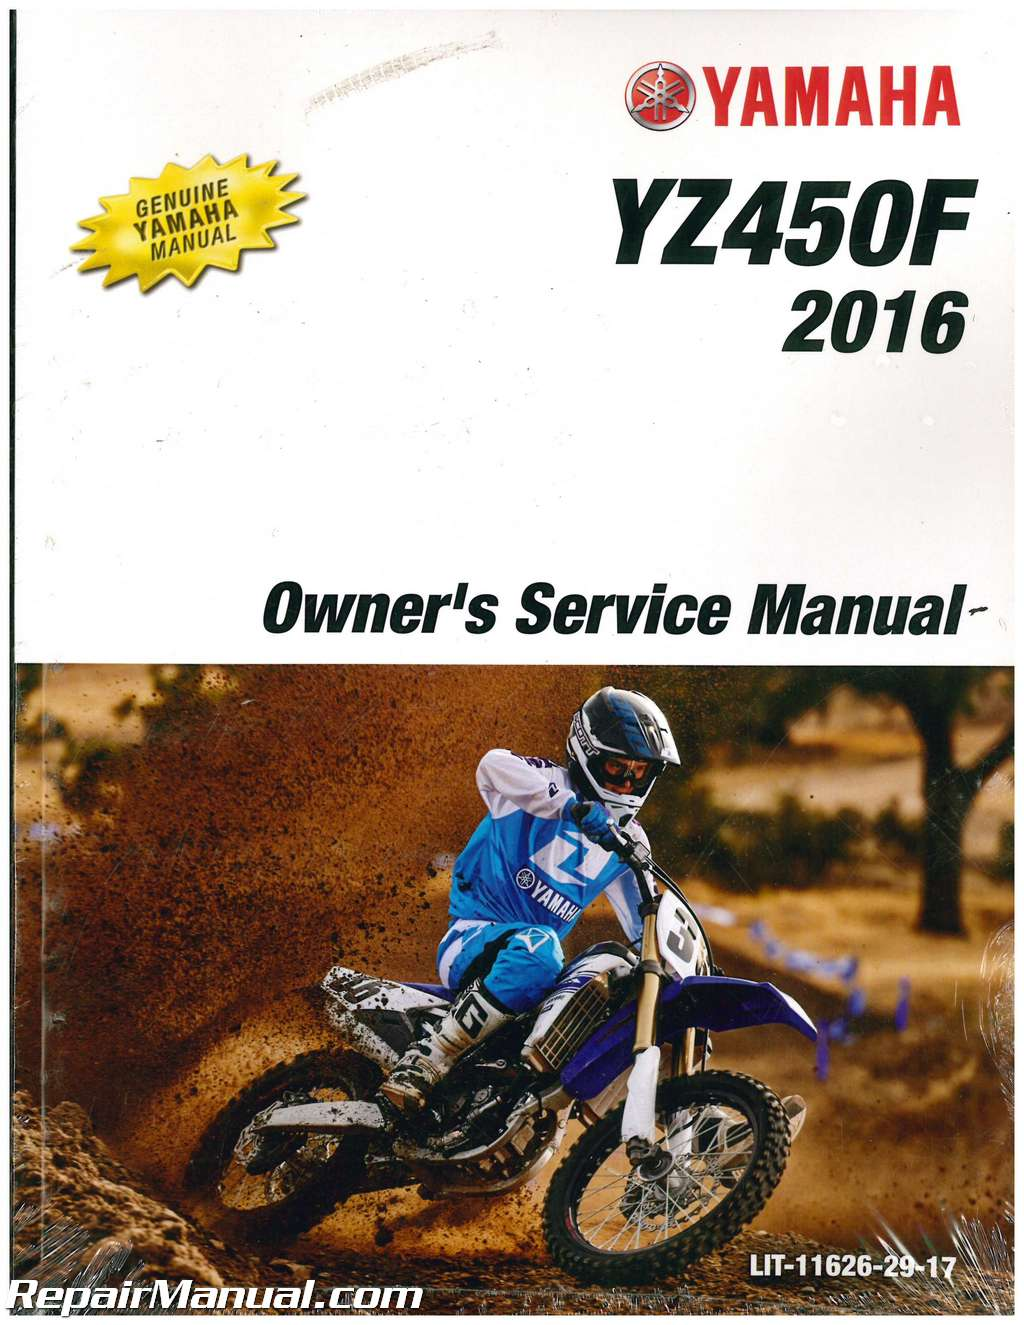 2016 yamaha yz450f motorcycle owners service manual. Black Bedroom Furniture Sets. Home Design Ideas